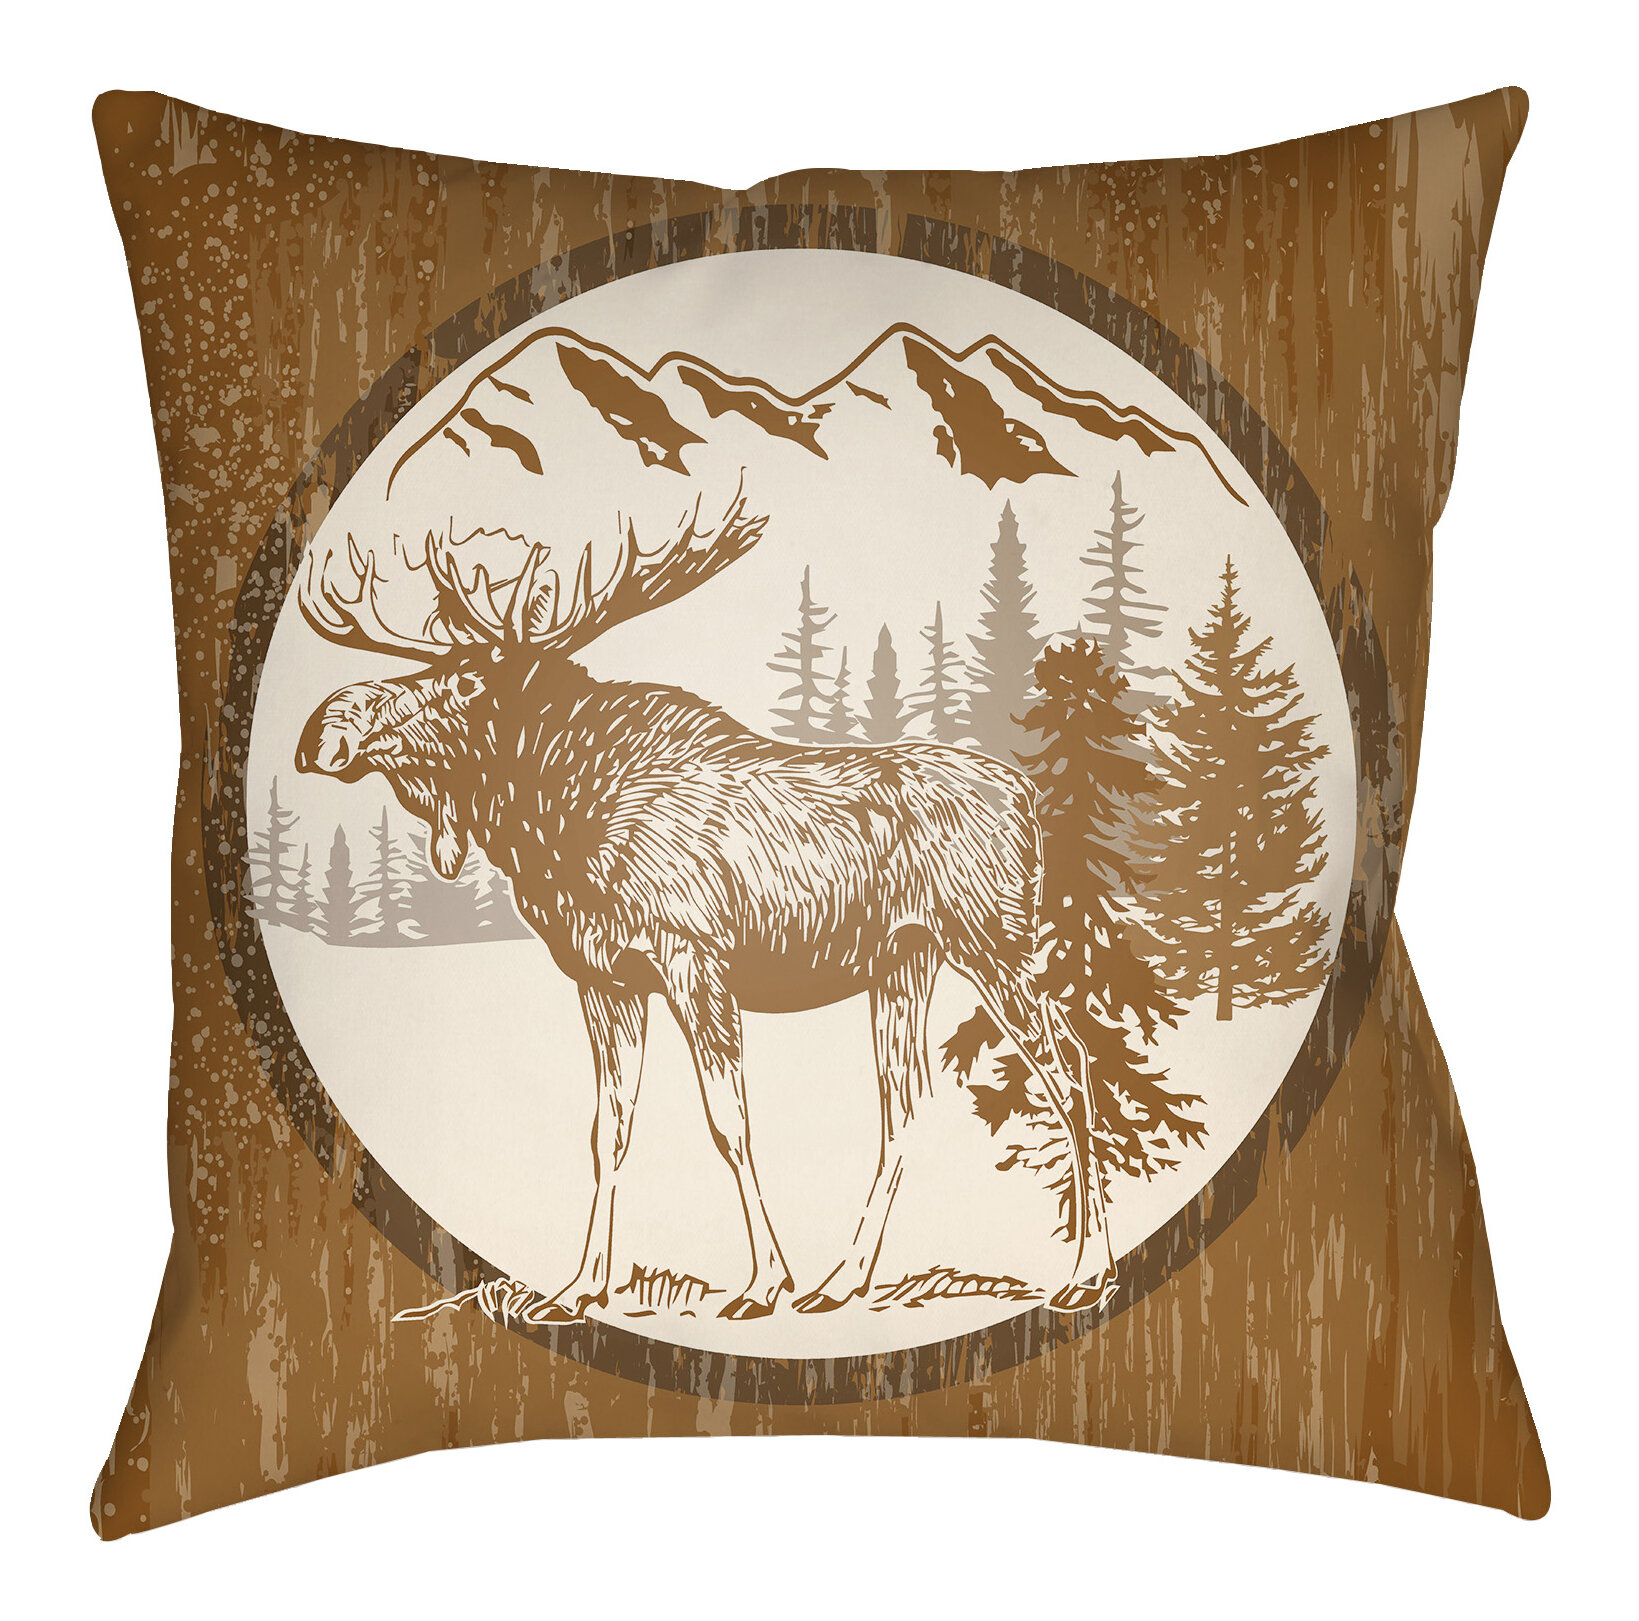 Throw Pillows Meaning : Artistic Weavers Lodge Cabin Moose Indoor/Outdoor Throw Pillow eBay